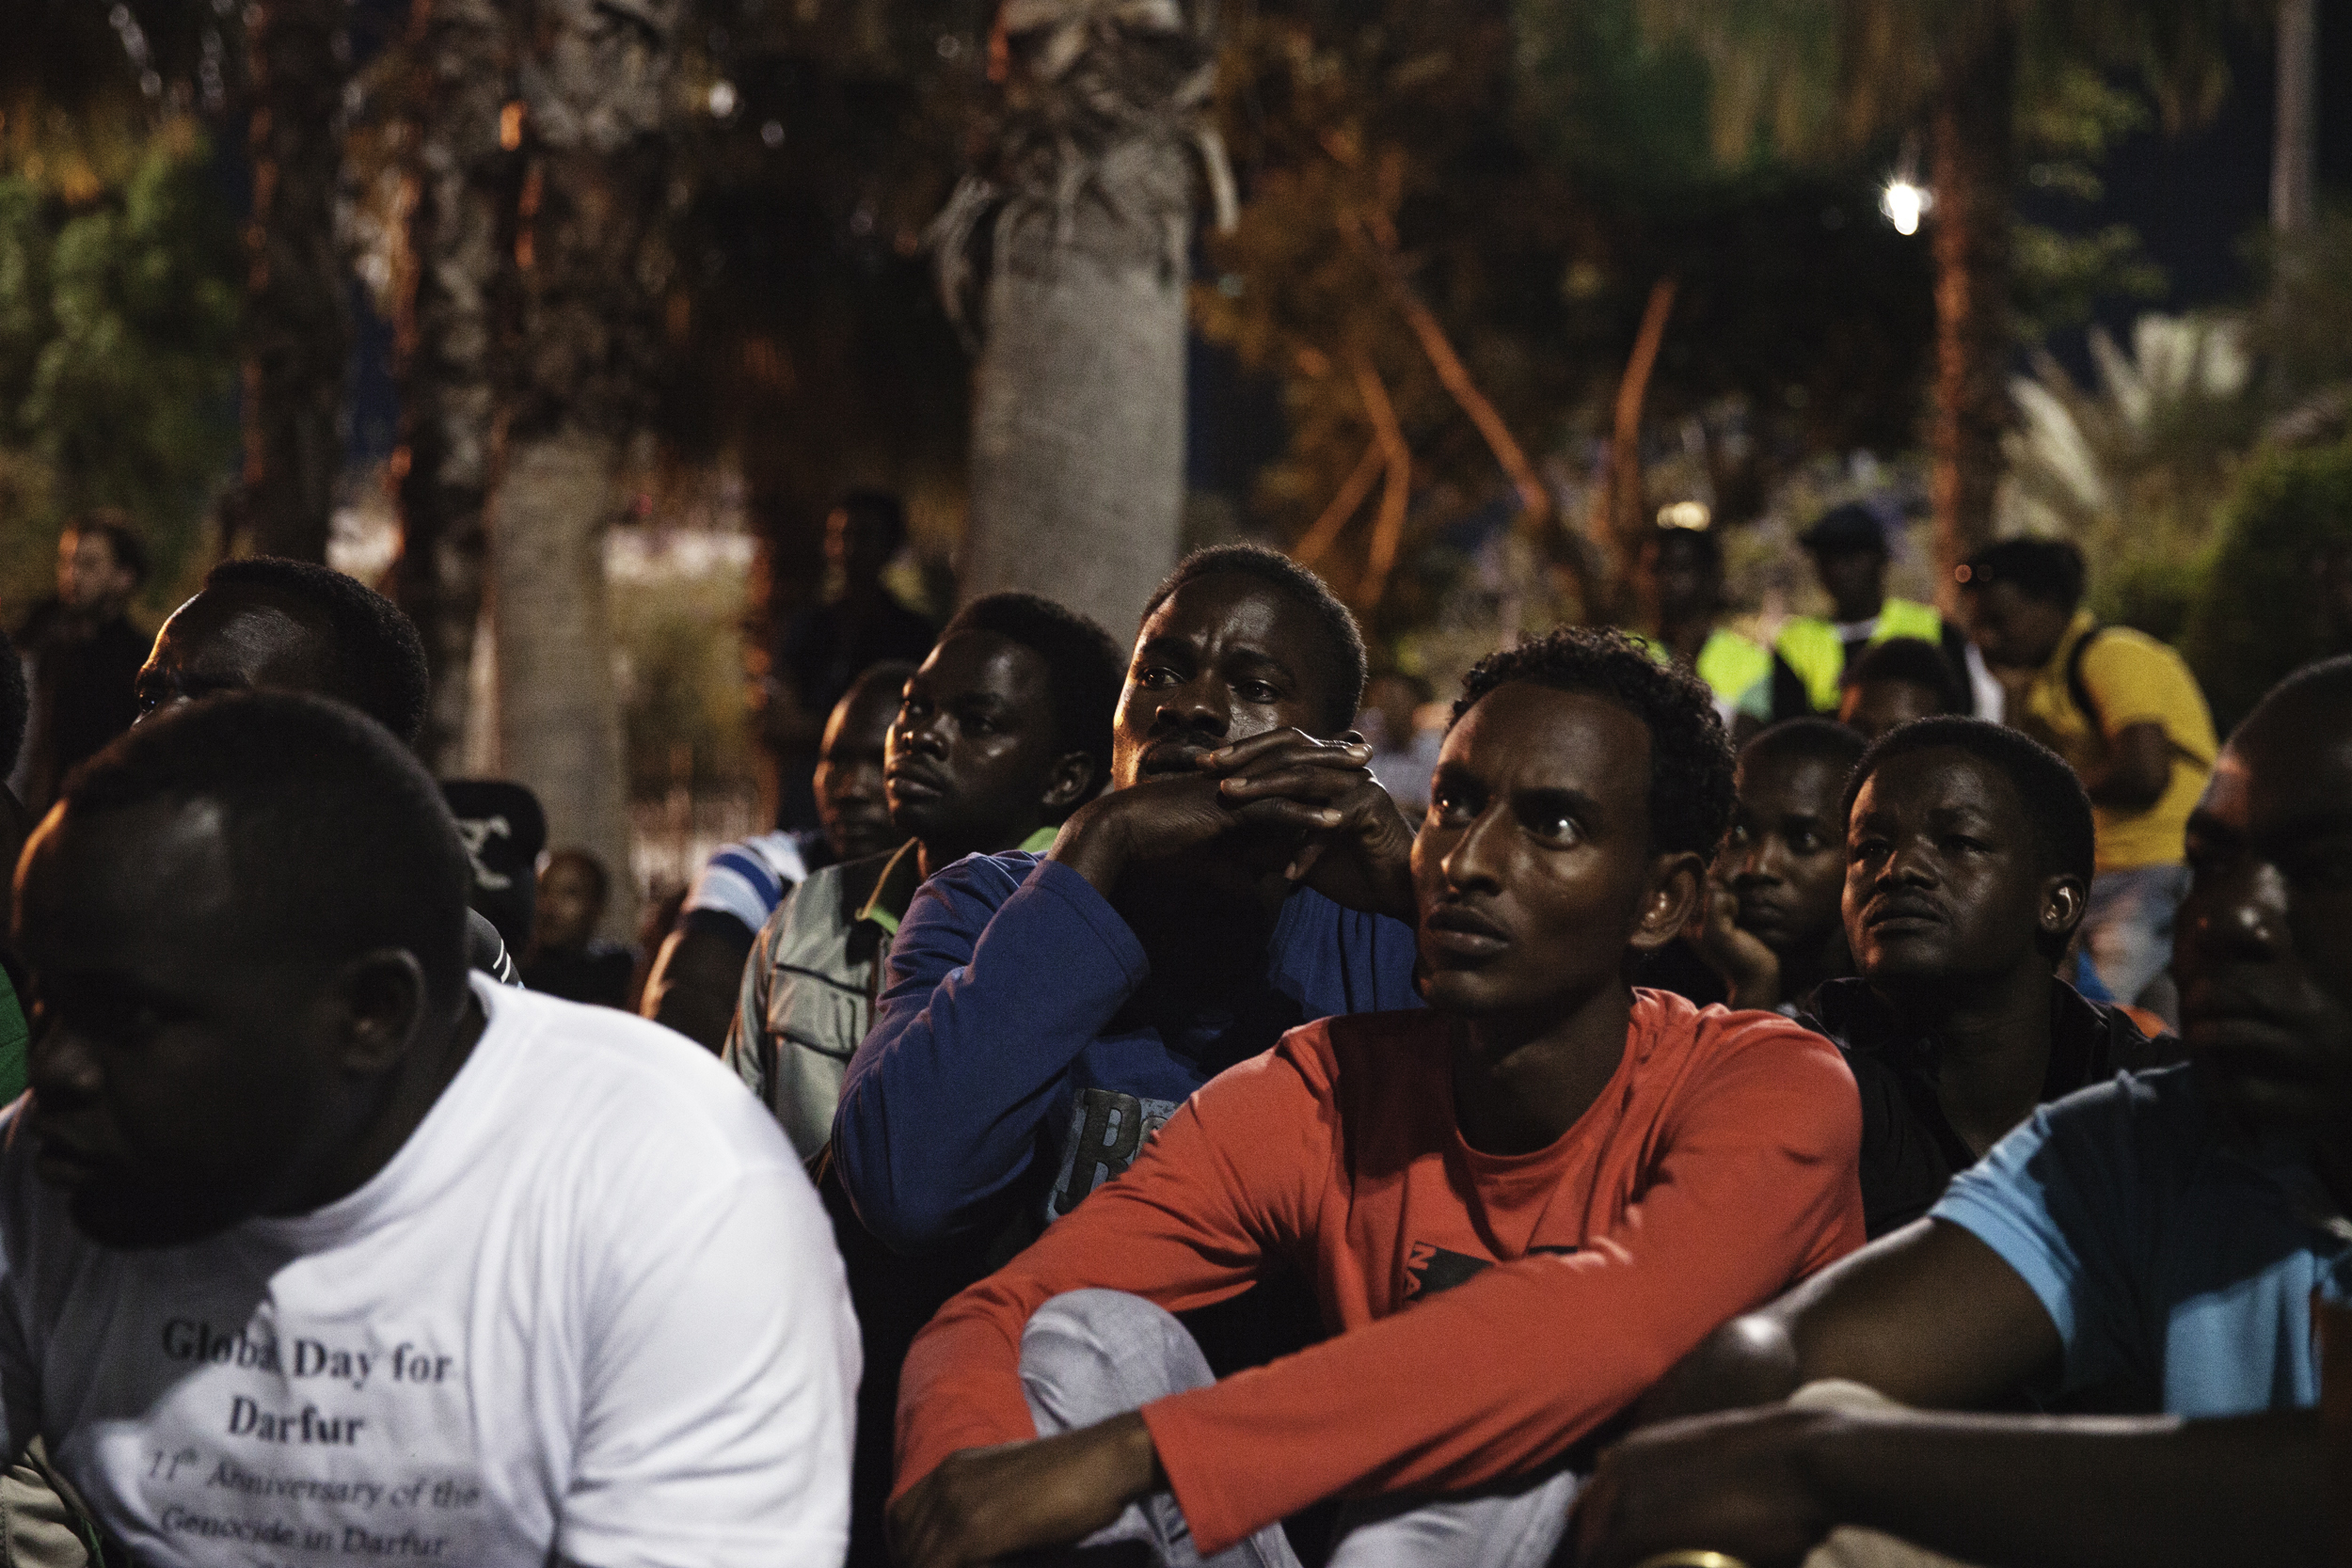 In the same week that people in Israel honor Holocaust Remembrance Day, a group of African asylum-seekers gathered in Levinsky Park, Tel Aviv for Global Darfur Day to commemorate the ongoing genocide in Darfur. Israel has yet to recognize a single Sudanese national as a refugee.